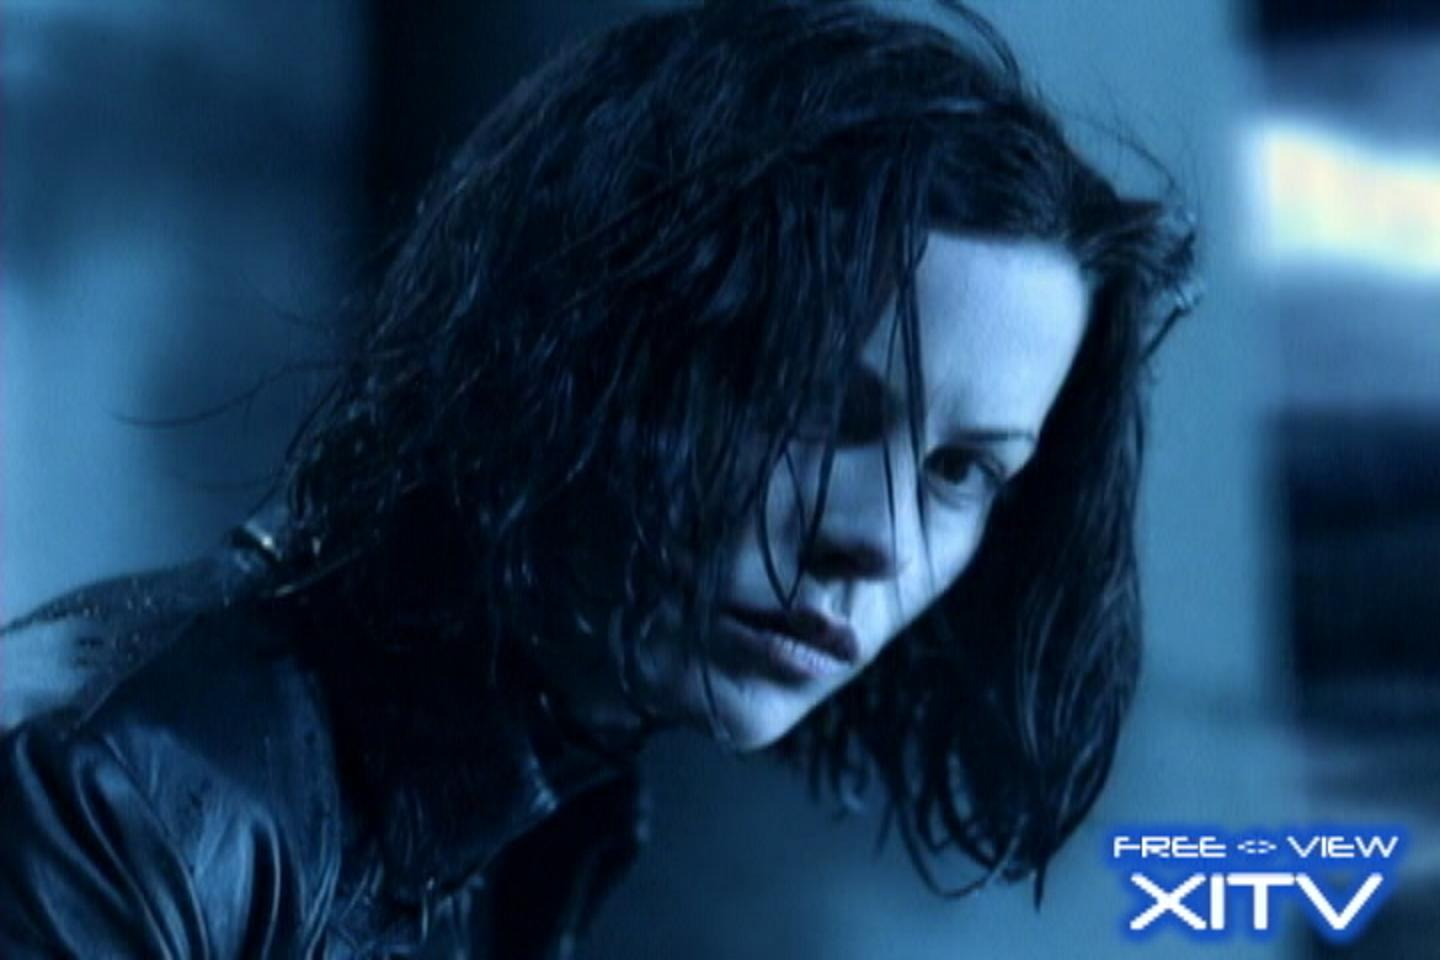 XITV FREE <> VIEW Underworld! Starring Kate Beckinsale! XITV Is Must See TV!